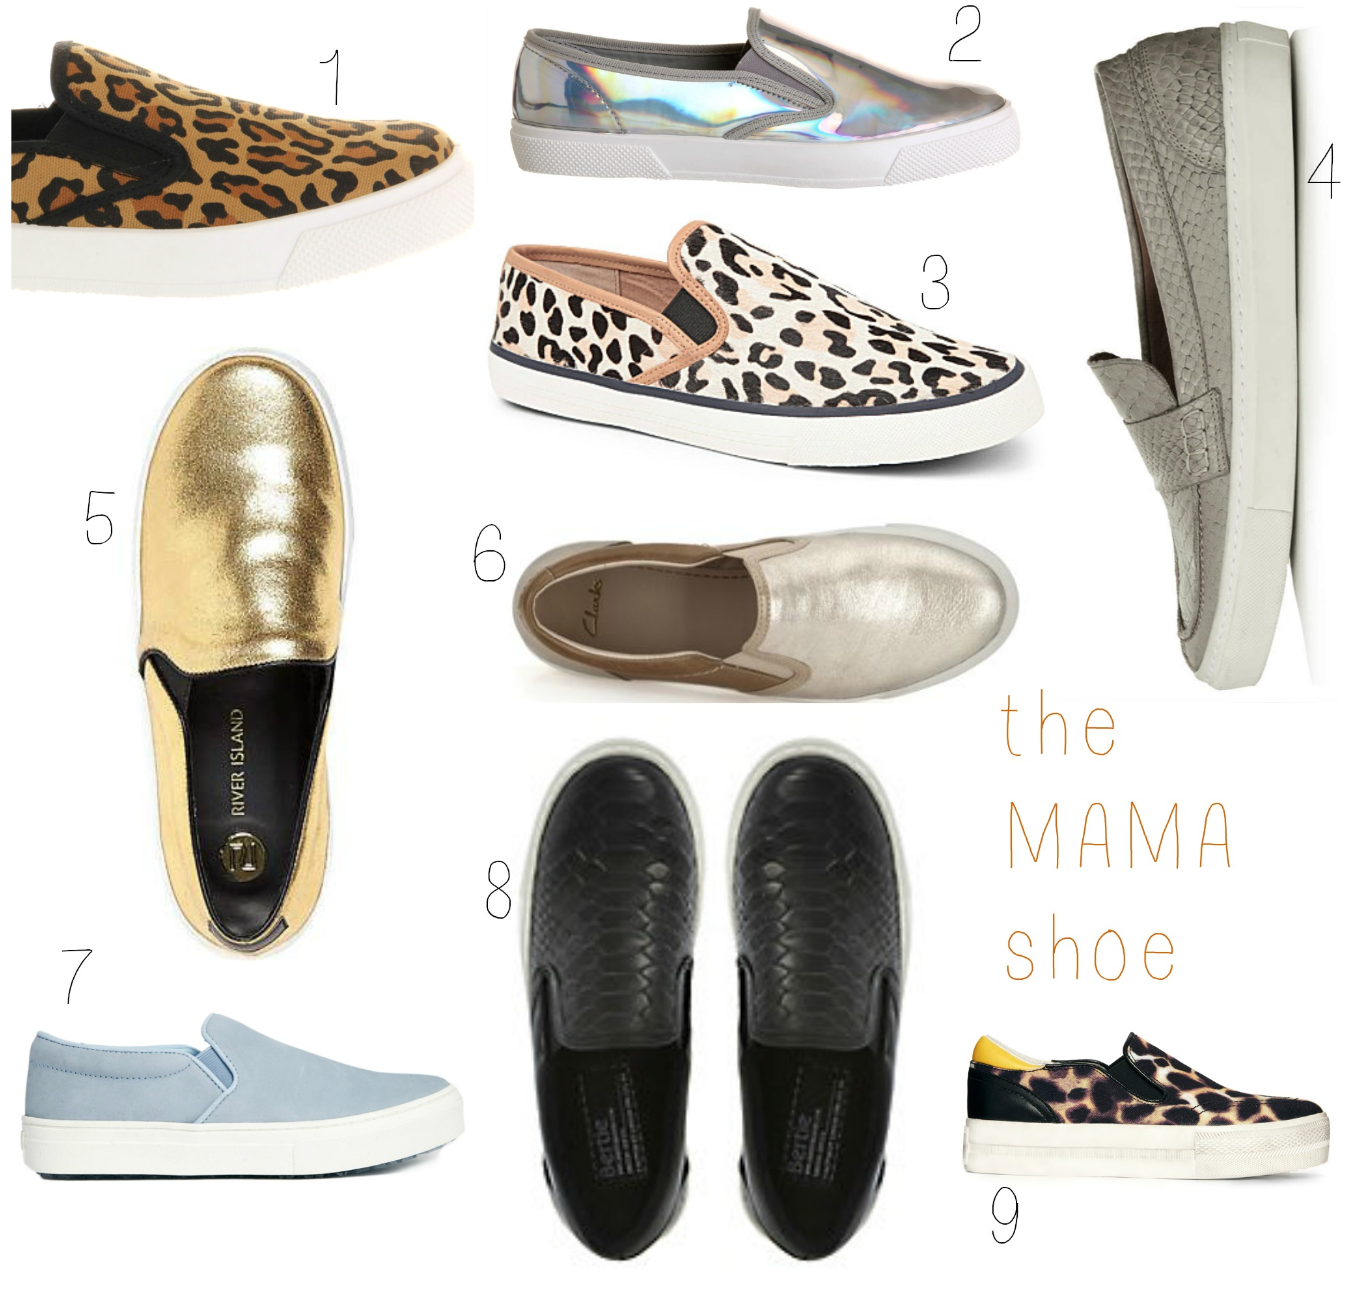 mamasVIB | V. I. BABYMAMAS: The new stylish MAMA shoe…say hello to the slip on trainer, designer, fashion, high street buys, mama approved, mama buys, mama style, new trends, shoes, shopping, style, Stylish mamas, trainers, V. I. BABYMAMAS,